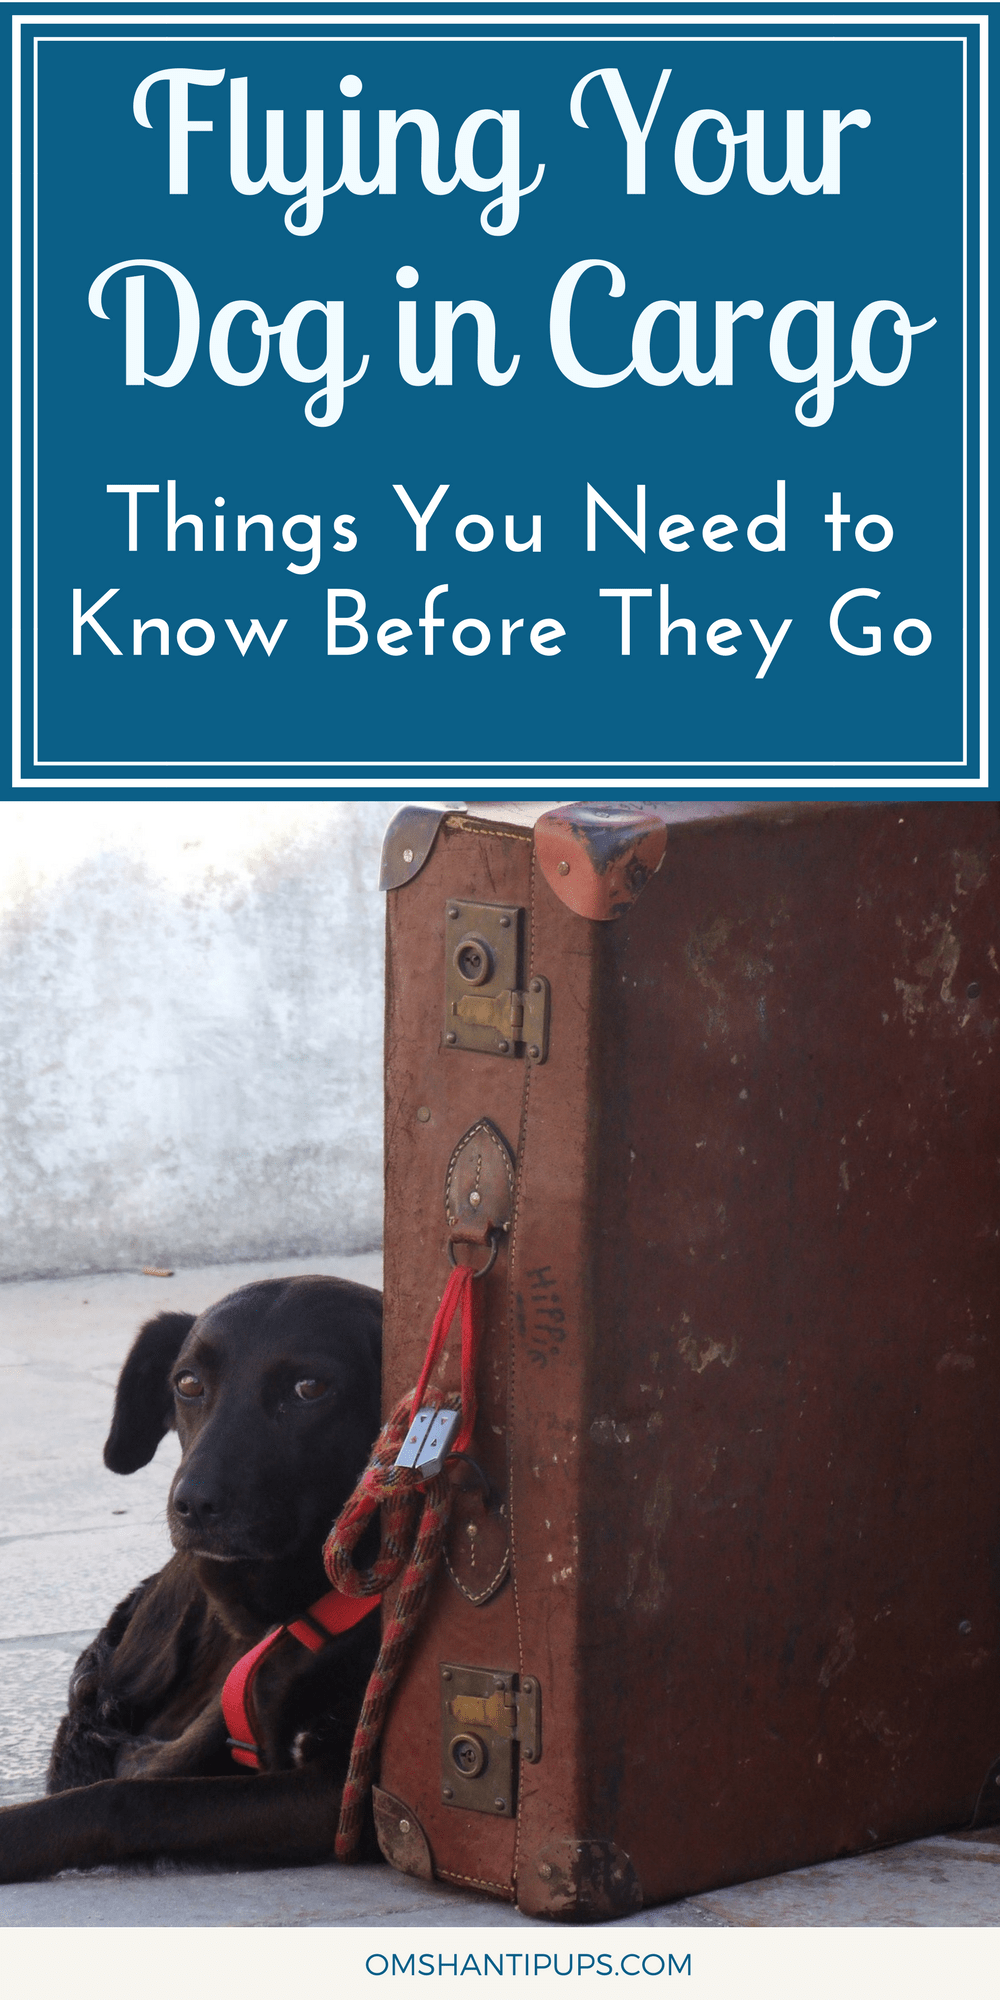 What if you need to travel with your large dog? Whether moving or  going on a long vacation, sometimes dogs must fly in cargo. Here's what you should know!